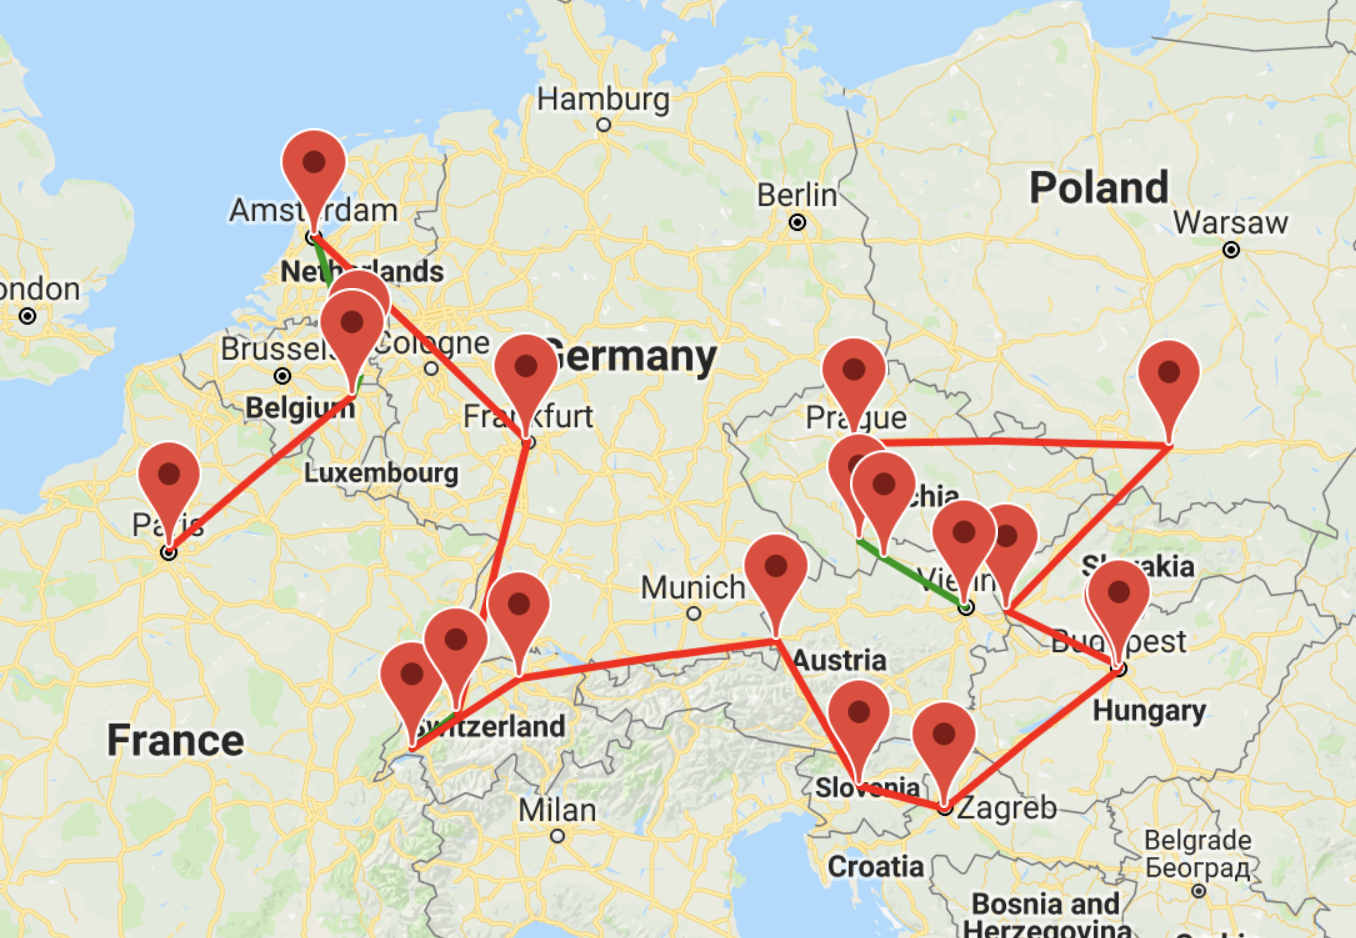 Our one month itinerary through Europe